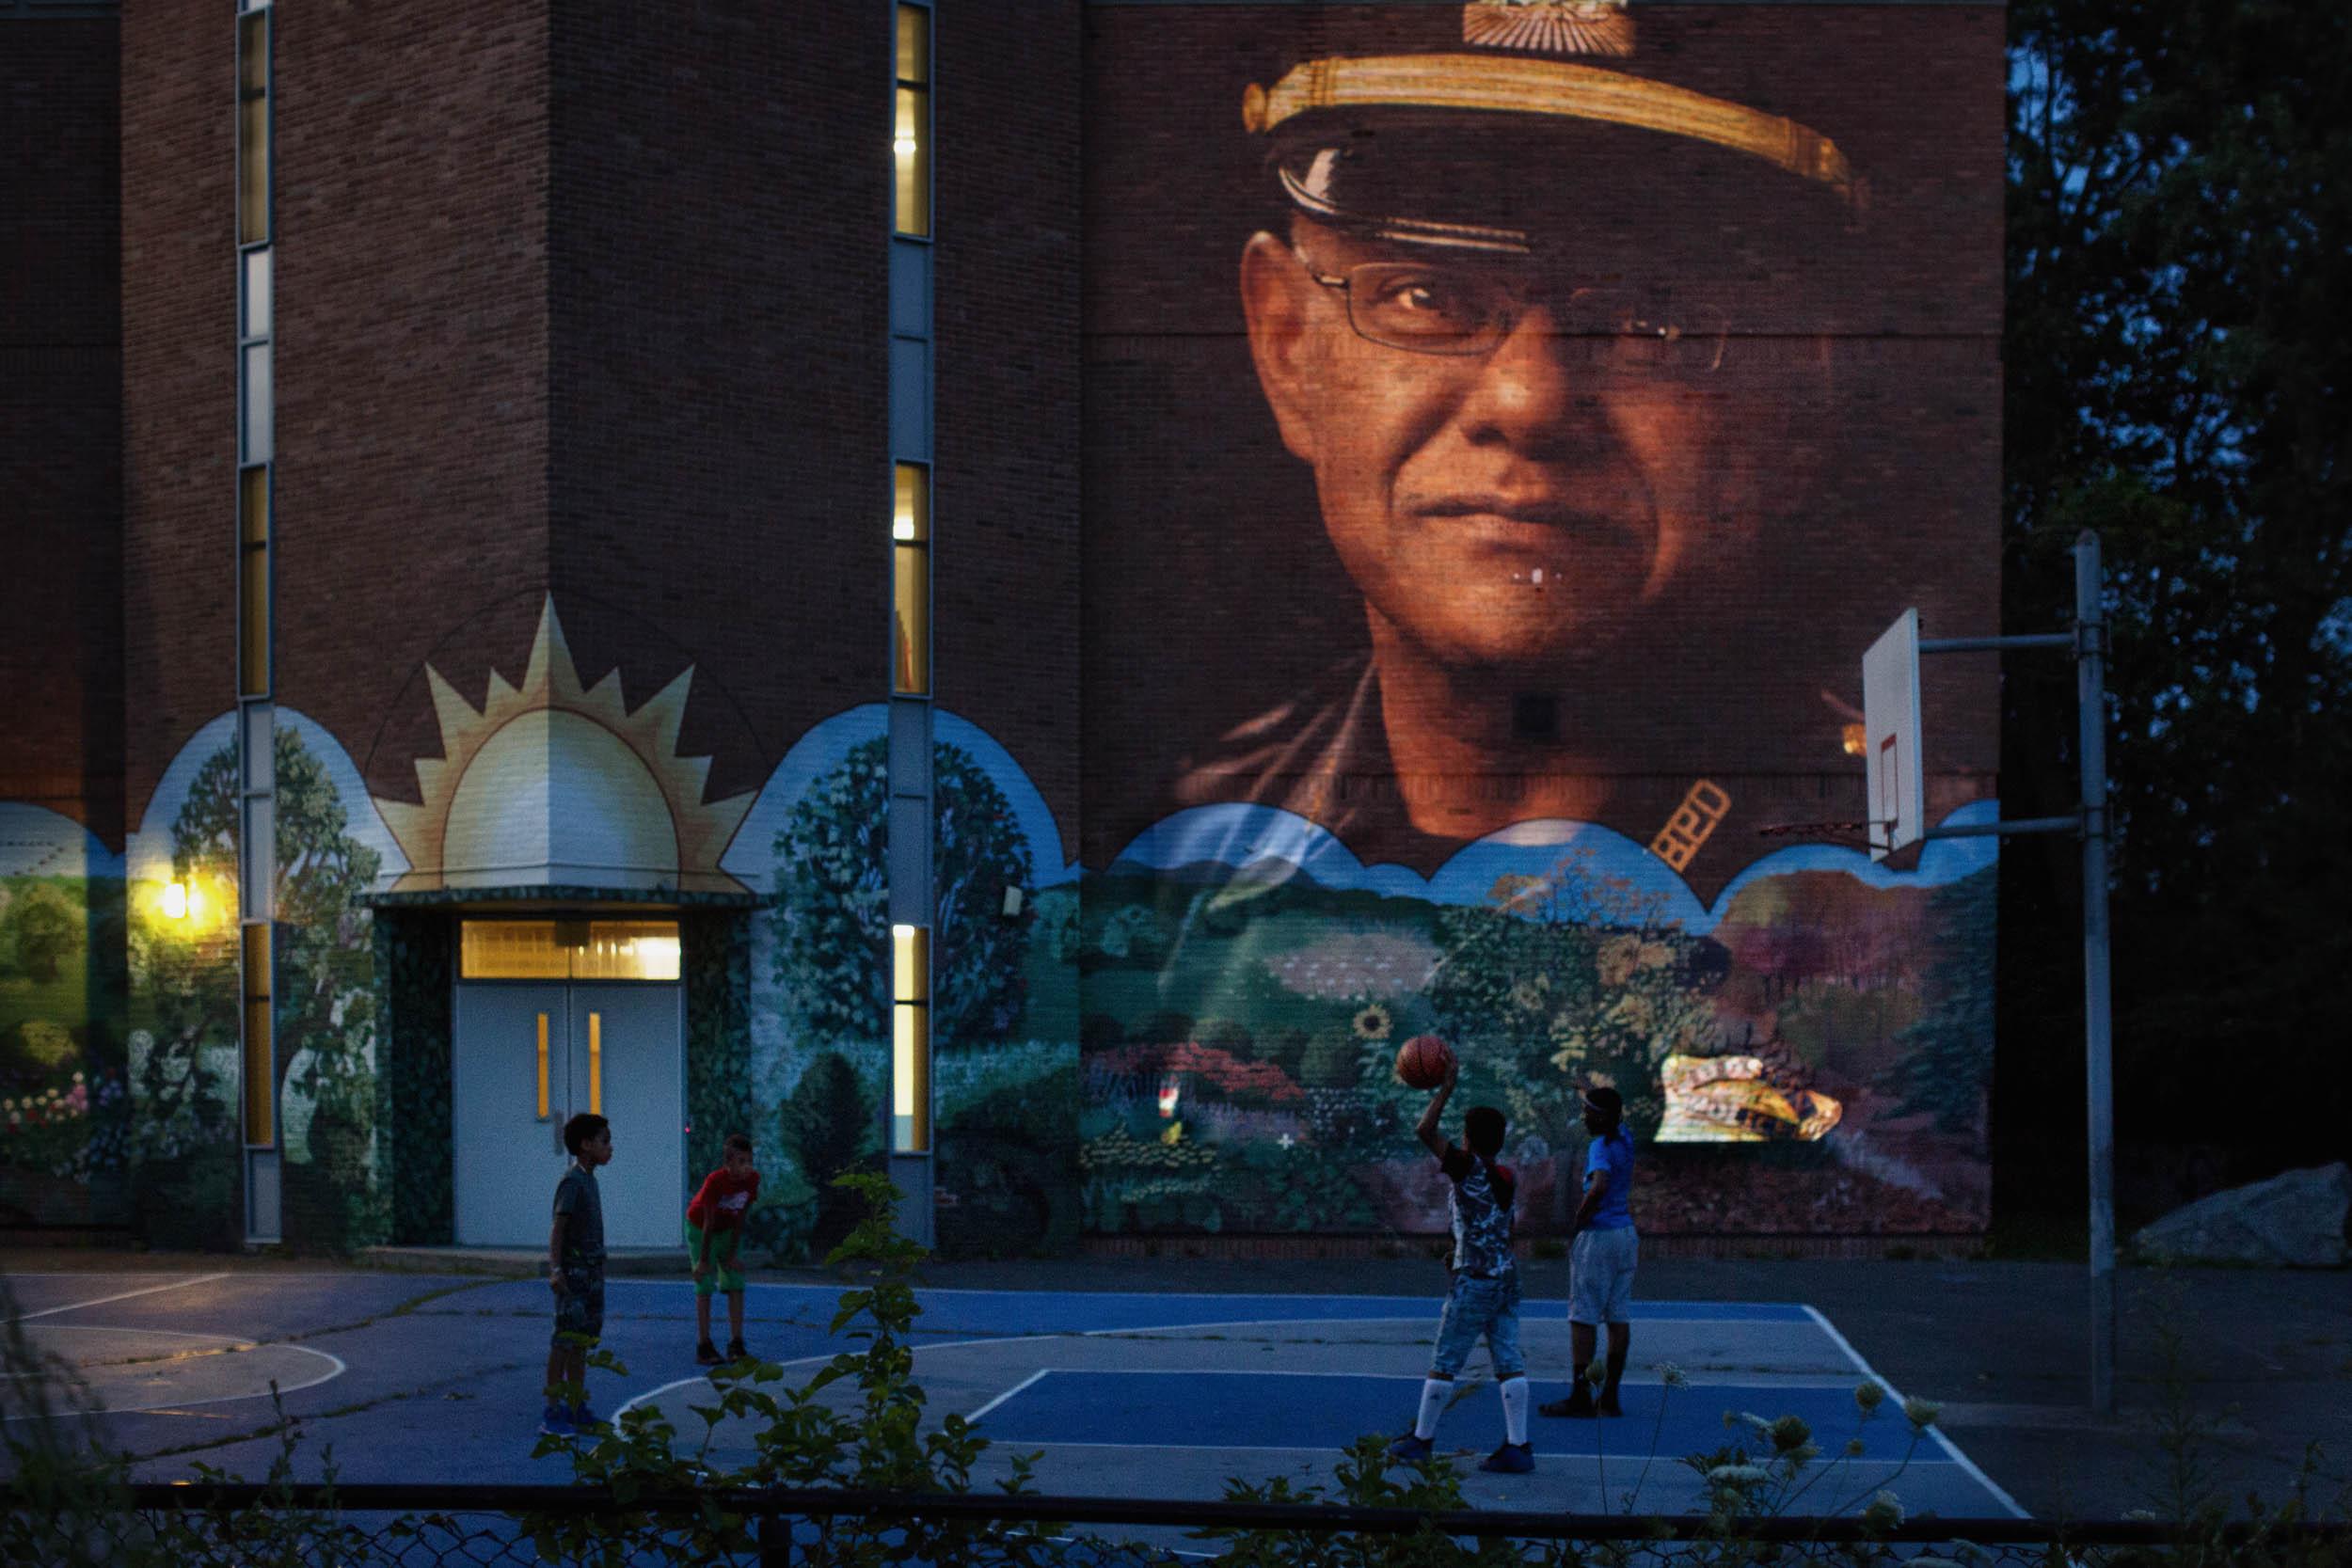 Haseeb Hosein | Trinidad Captain, Boston Police Department - Projected on the Lee School in the B-3 Police District where he works.